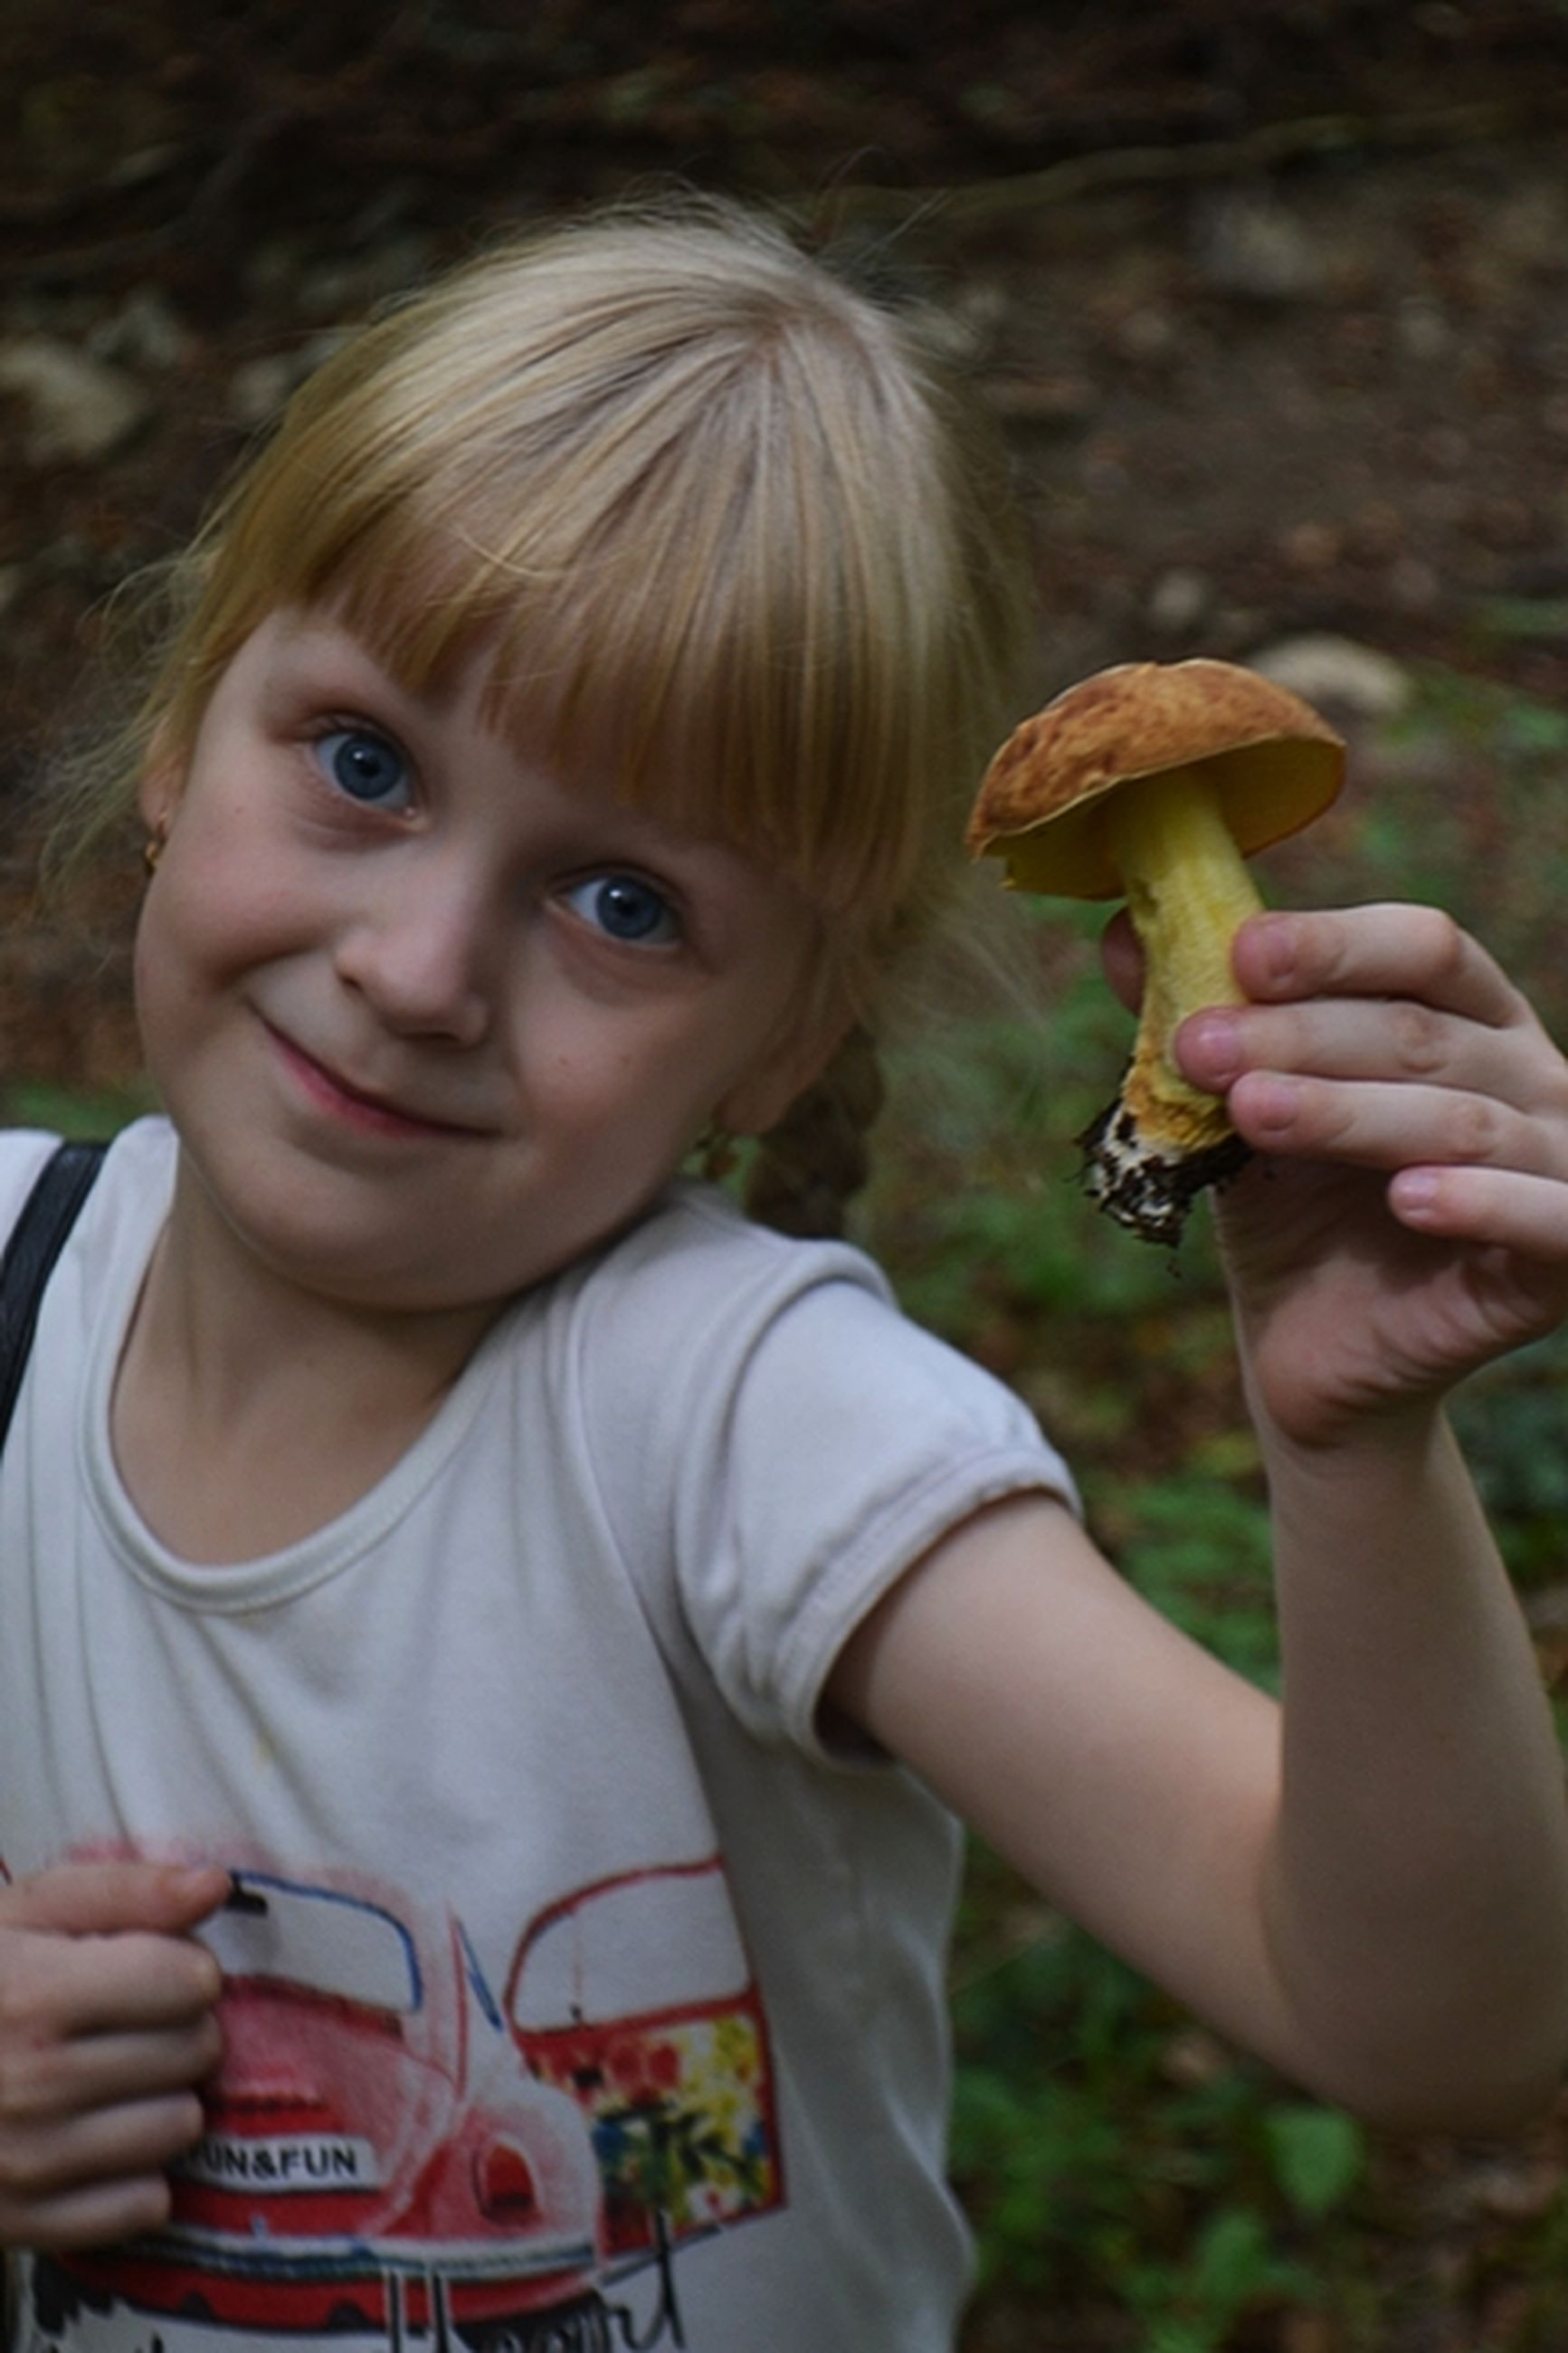 portrait, childhood, looking at camera, holding, one person, child, smiling, real people, front view, food, food and drink, land, focus on foreground, females, boys, fungus, mushroom, innocence, bangs, hairstyle